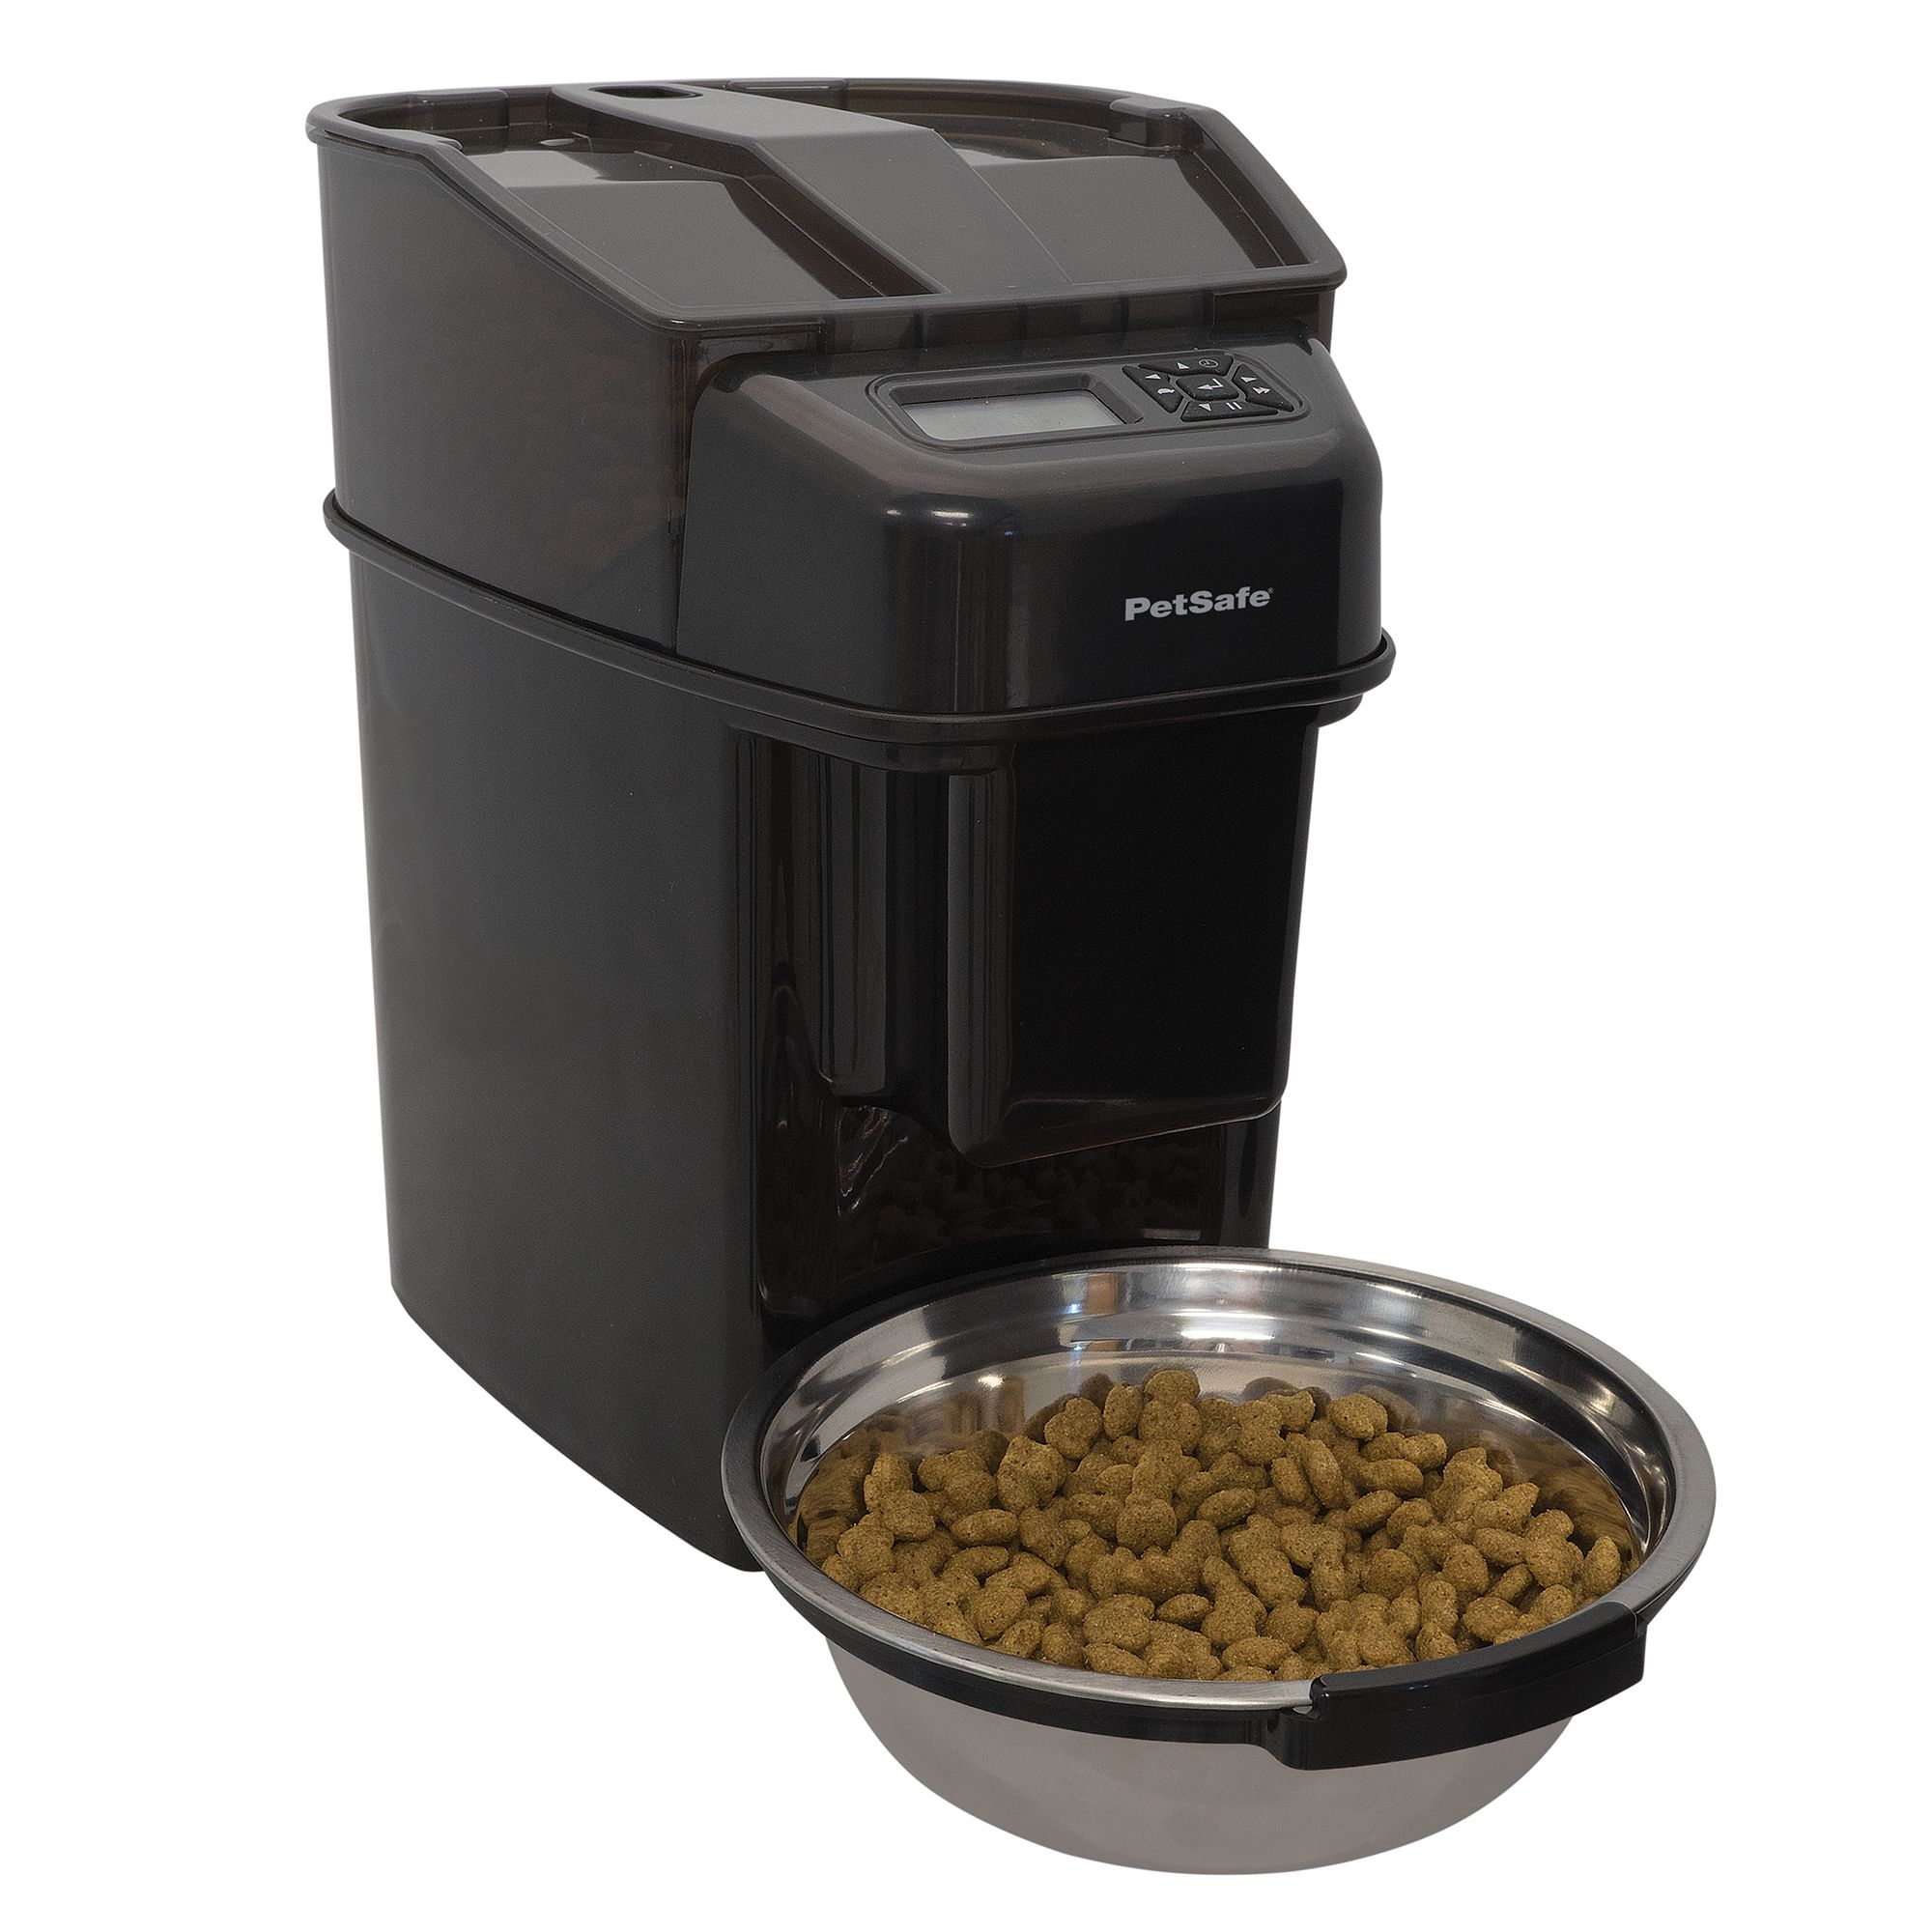 Healthy Pet Simply Feed, Automatic Pet Feeder, PetSafe 5271602